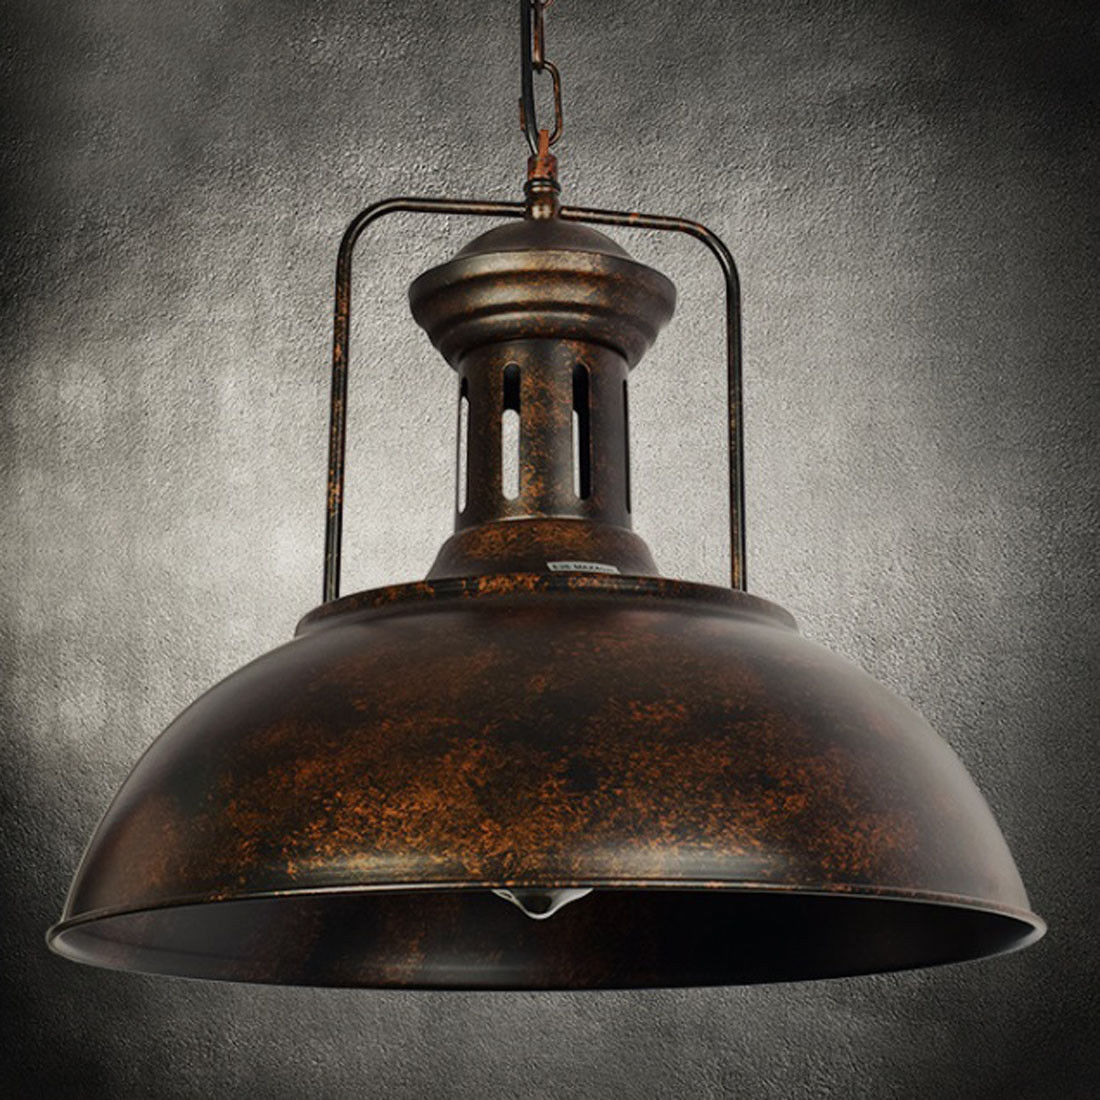 Industrial Pendant Light Vintage Ceiling Lamp Rustic